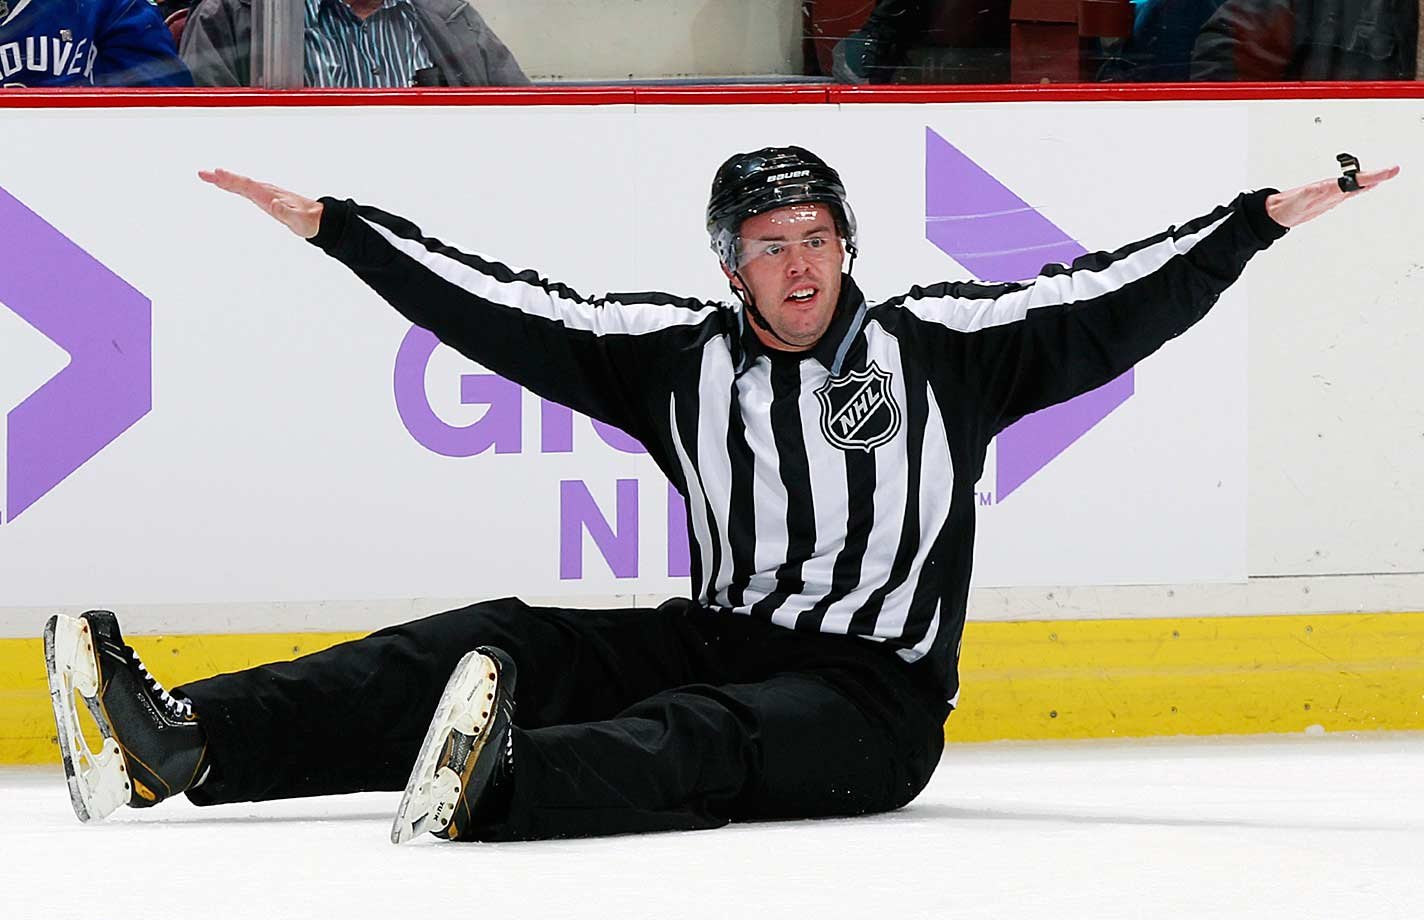 Winging it: The linesman gives the all-clear after falling to the ice during a game between the Washington Capitals and the Canucks at Vancouver's Rogers Arena on Oct. 26, 2014.